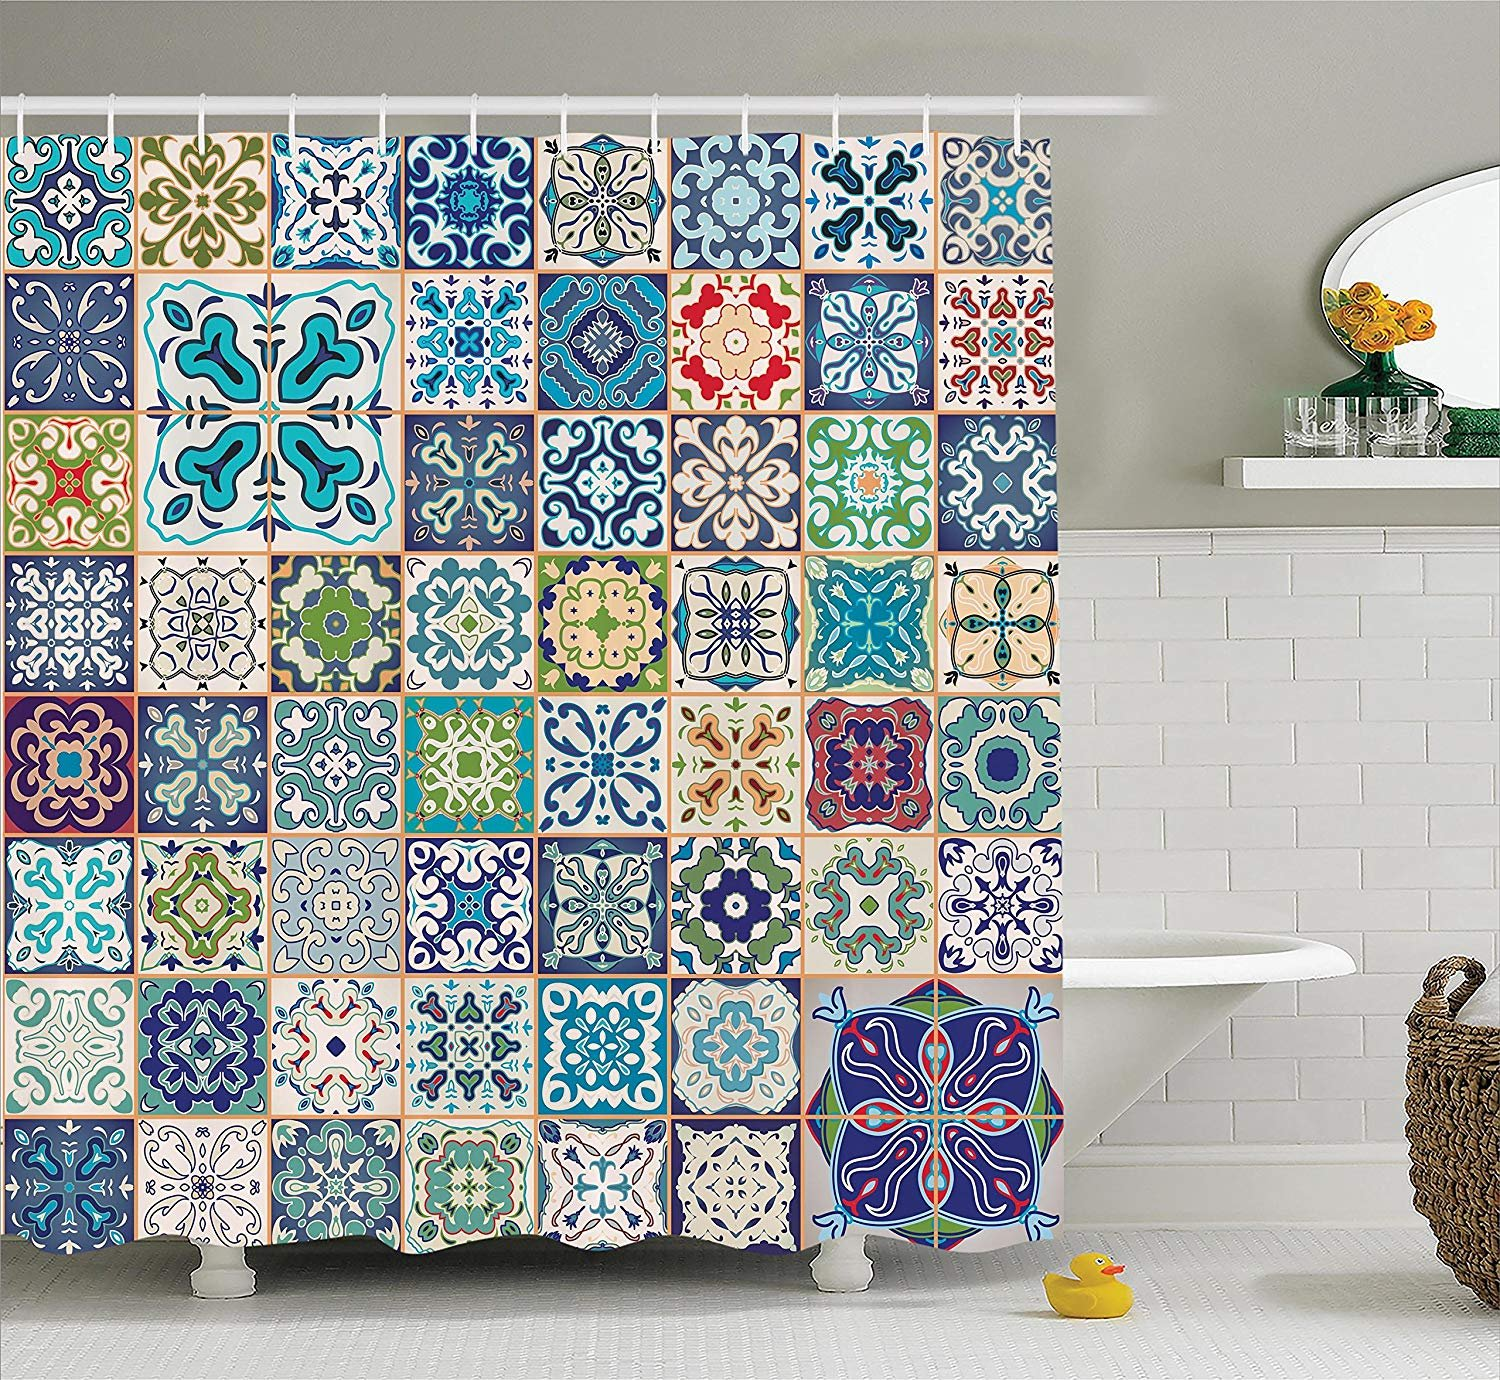 DIY Moroccan Decor Shower Curtain Set, Floral Patchwork Design with Arabesque Figure and Shapes Mediterranean Symbolic Artisan Work, Decorative Bathroom Curtain with Hooks, 72 x 84 Inches